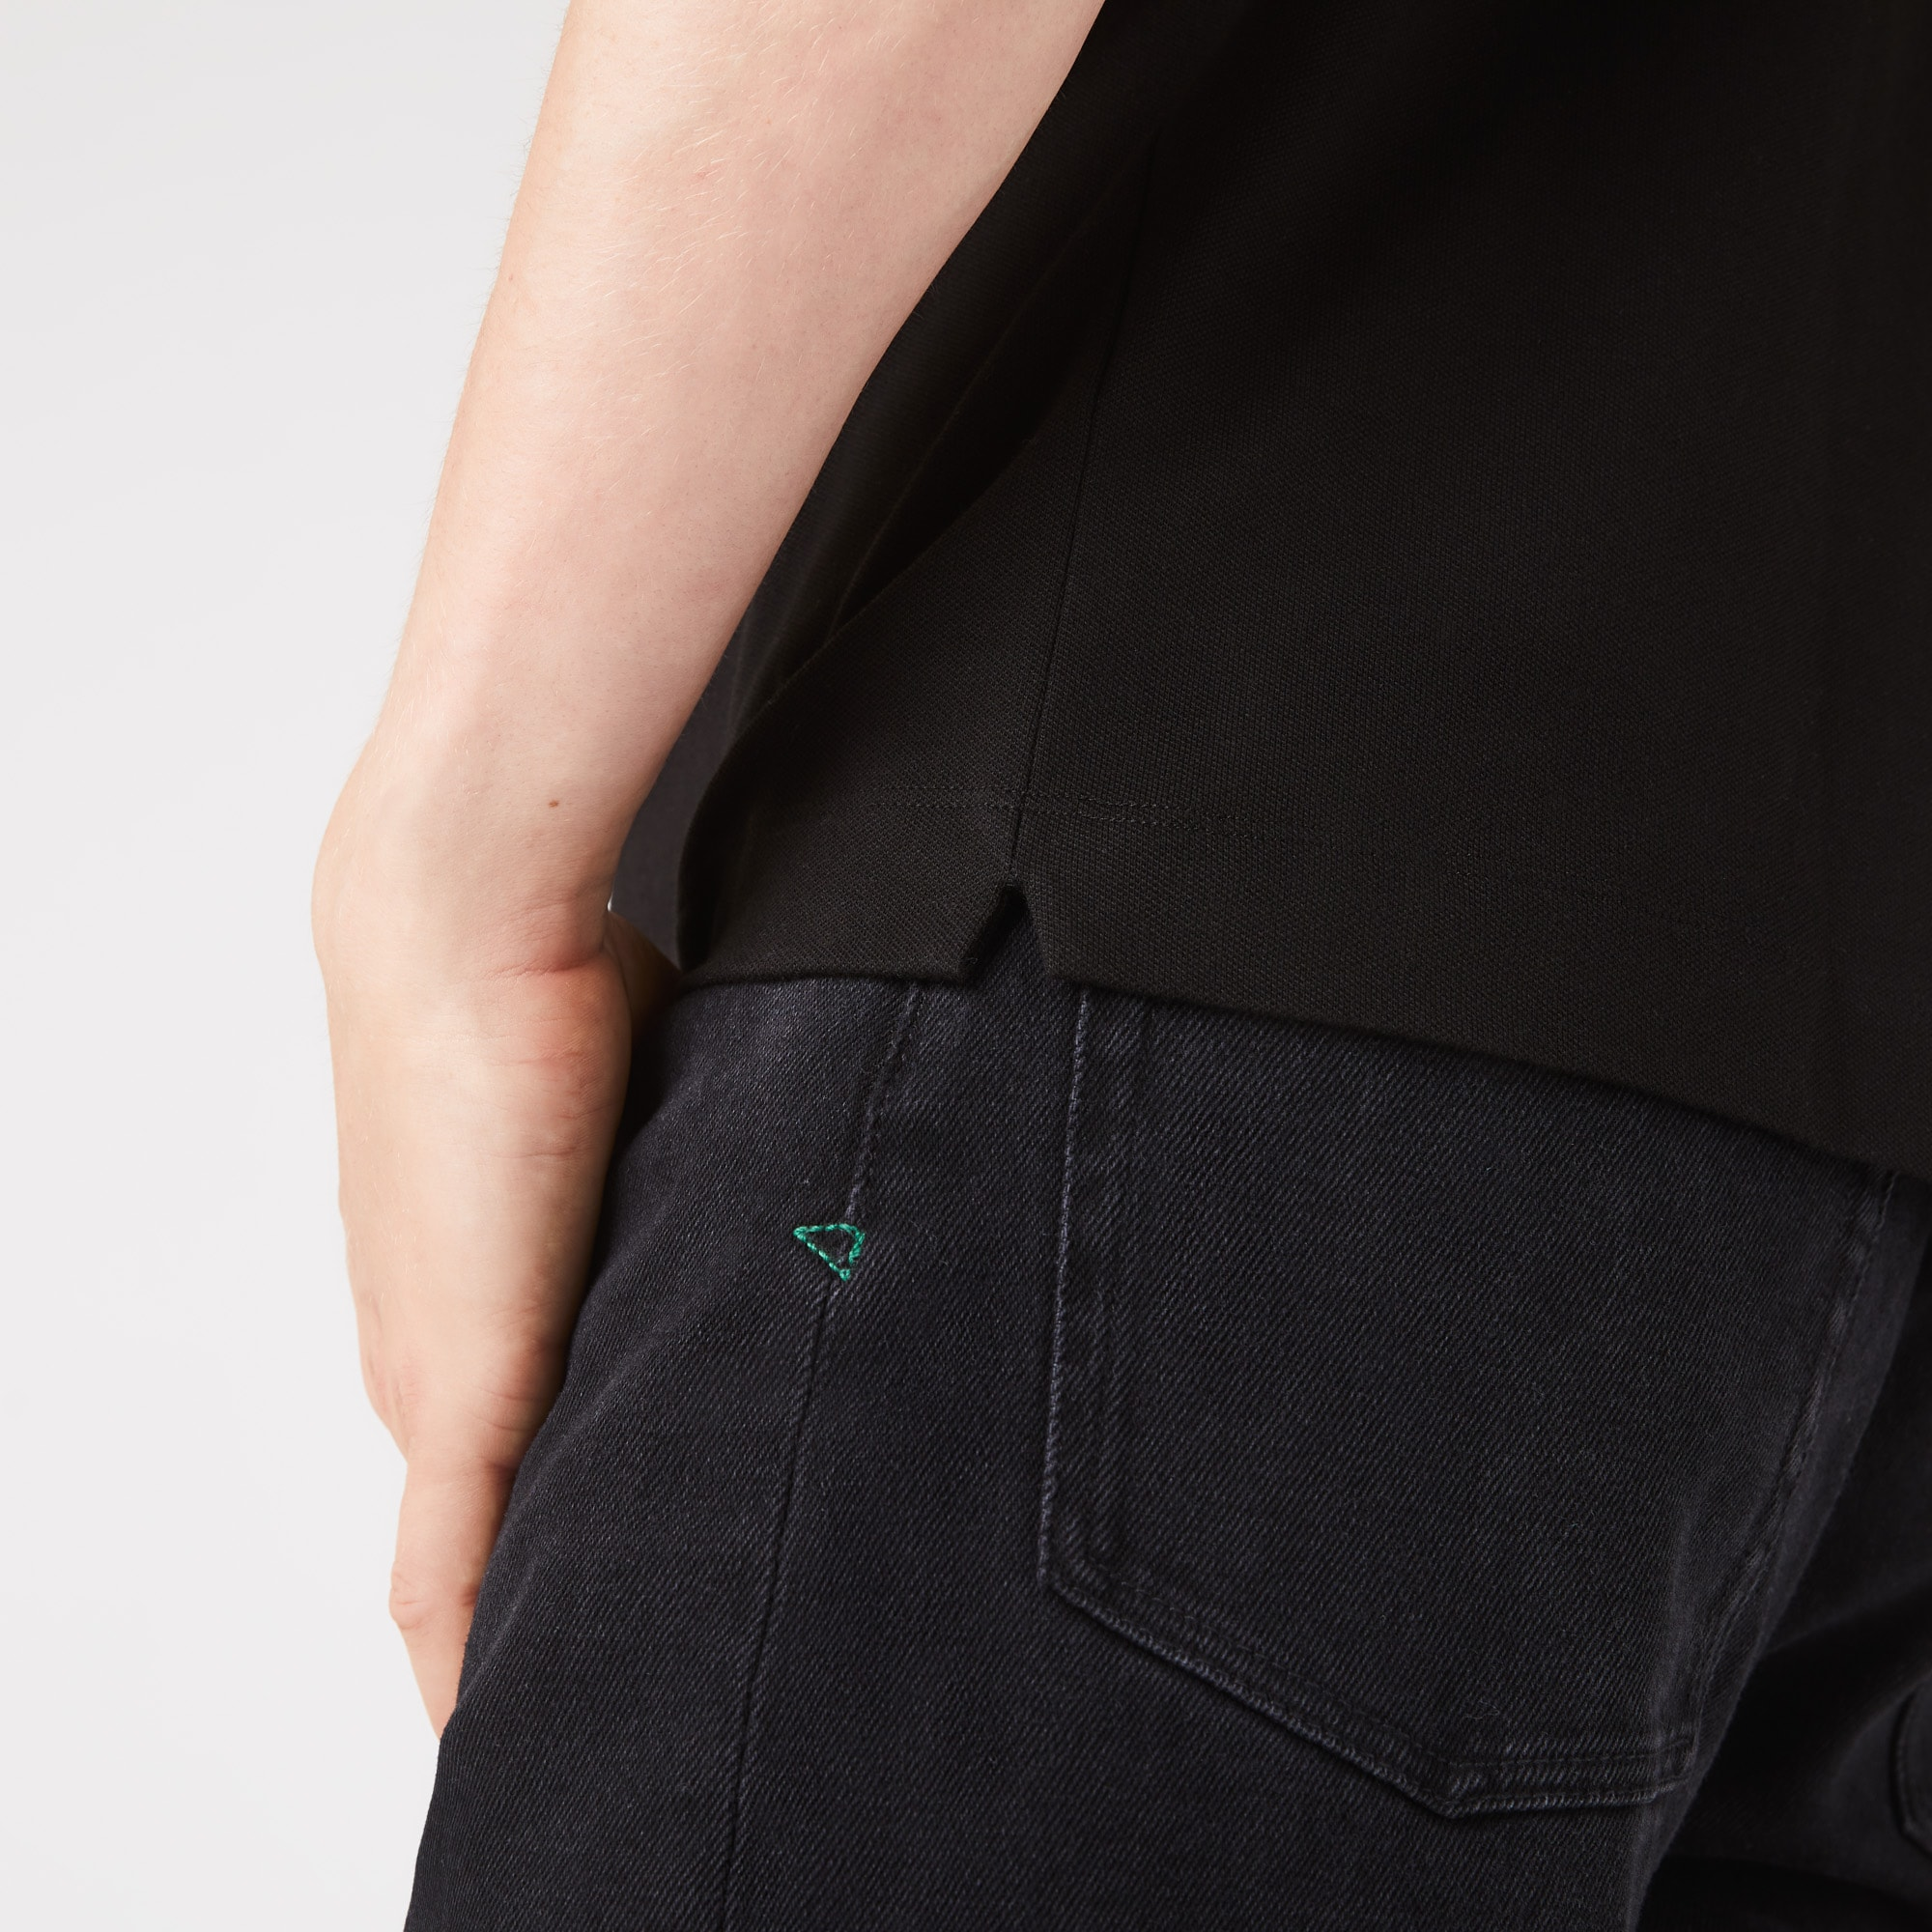 Regular Fit Herren-LACOSTE PARIS POLO aus Stretch-Piqué